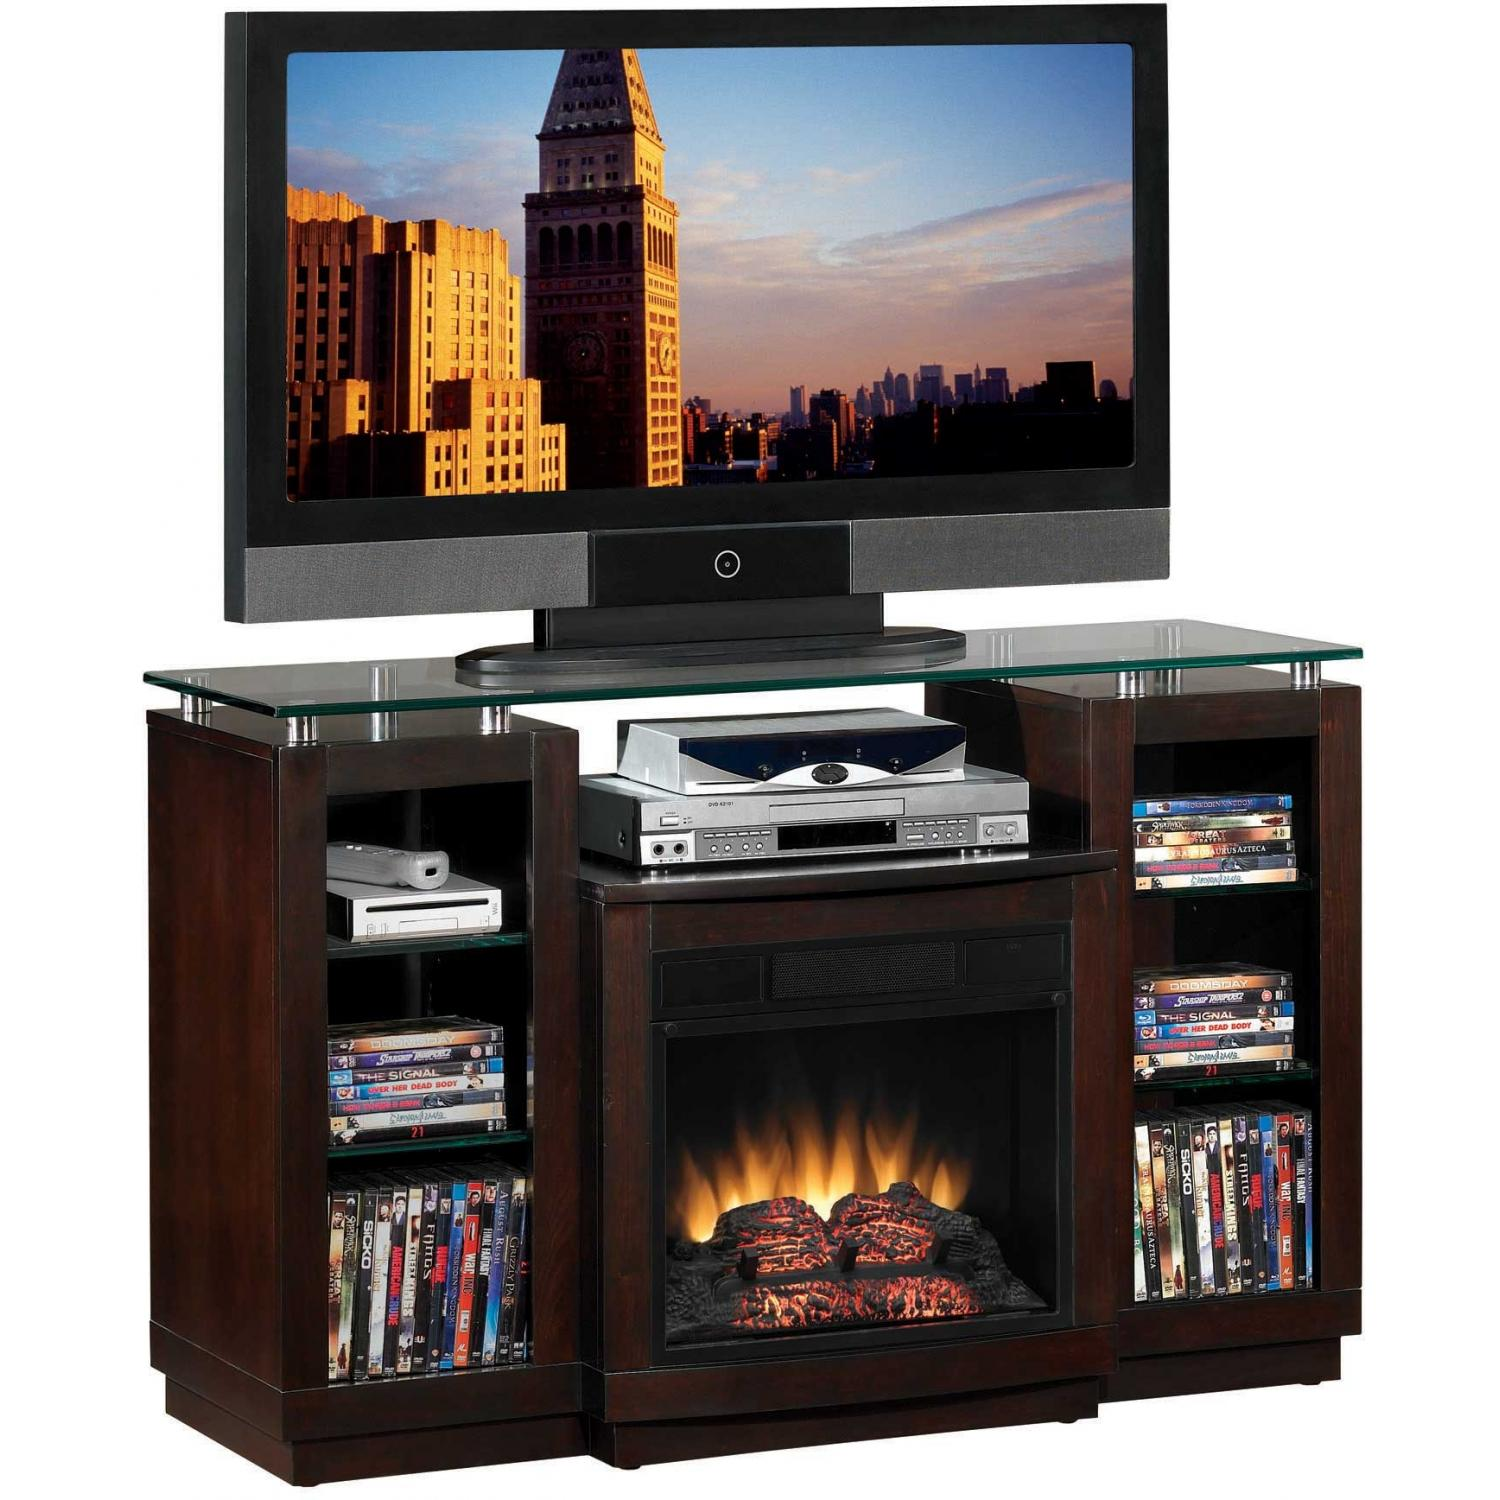 ClassicFlame 18MM2280-E451 Ashburn Electric Fireplace With Home Theater System - Espresso